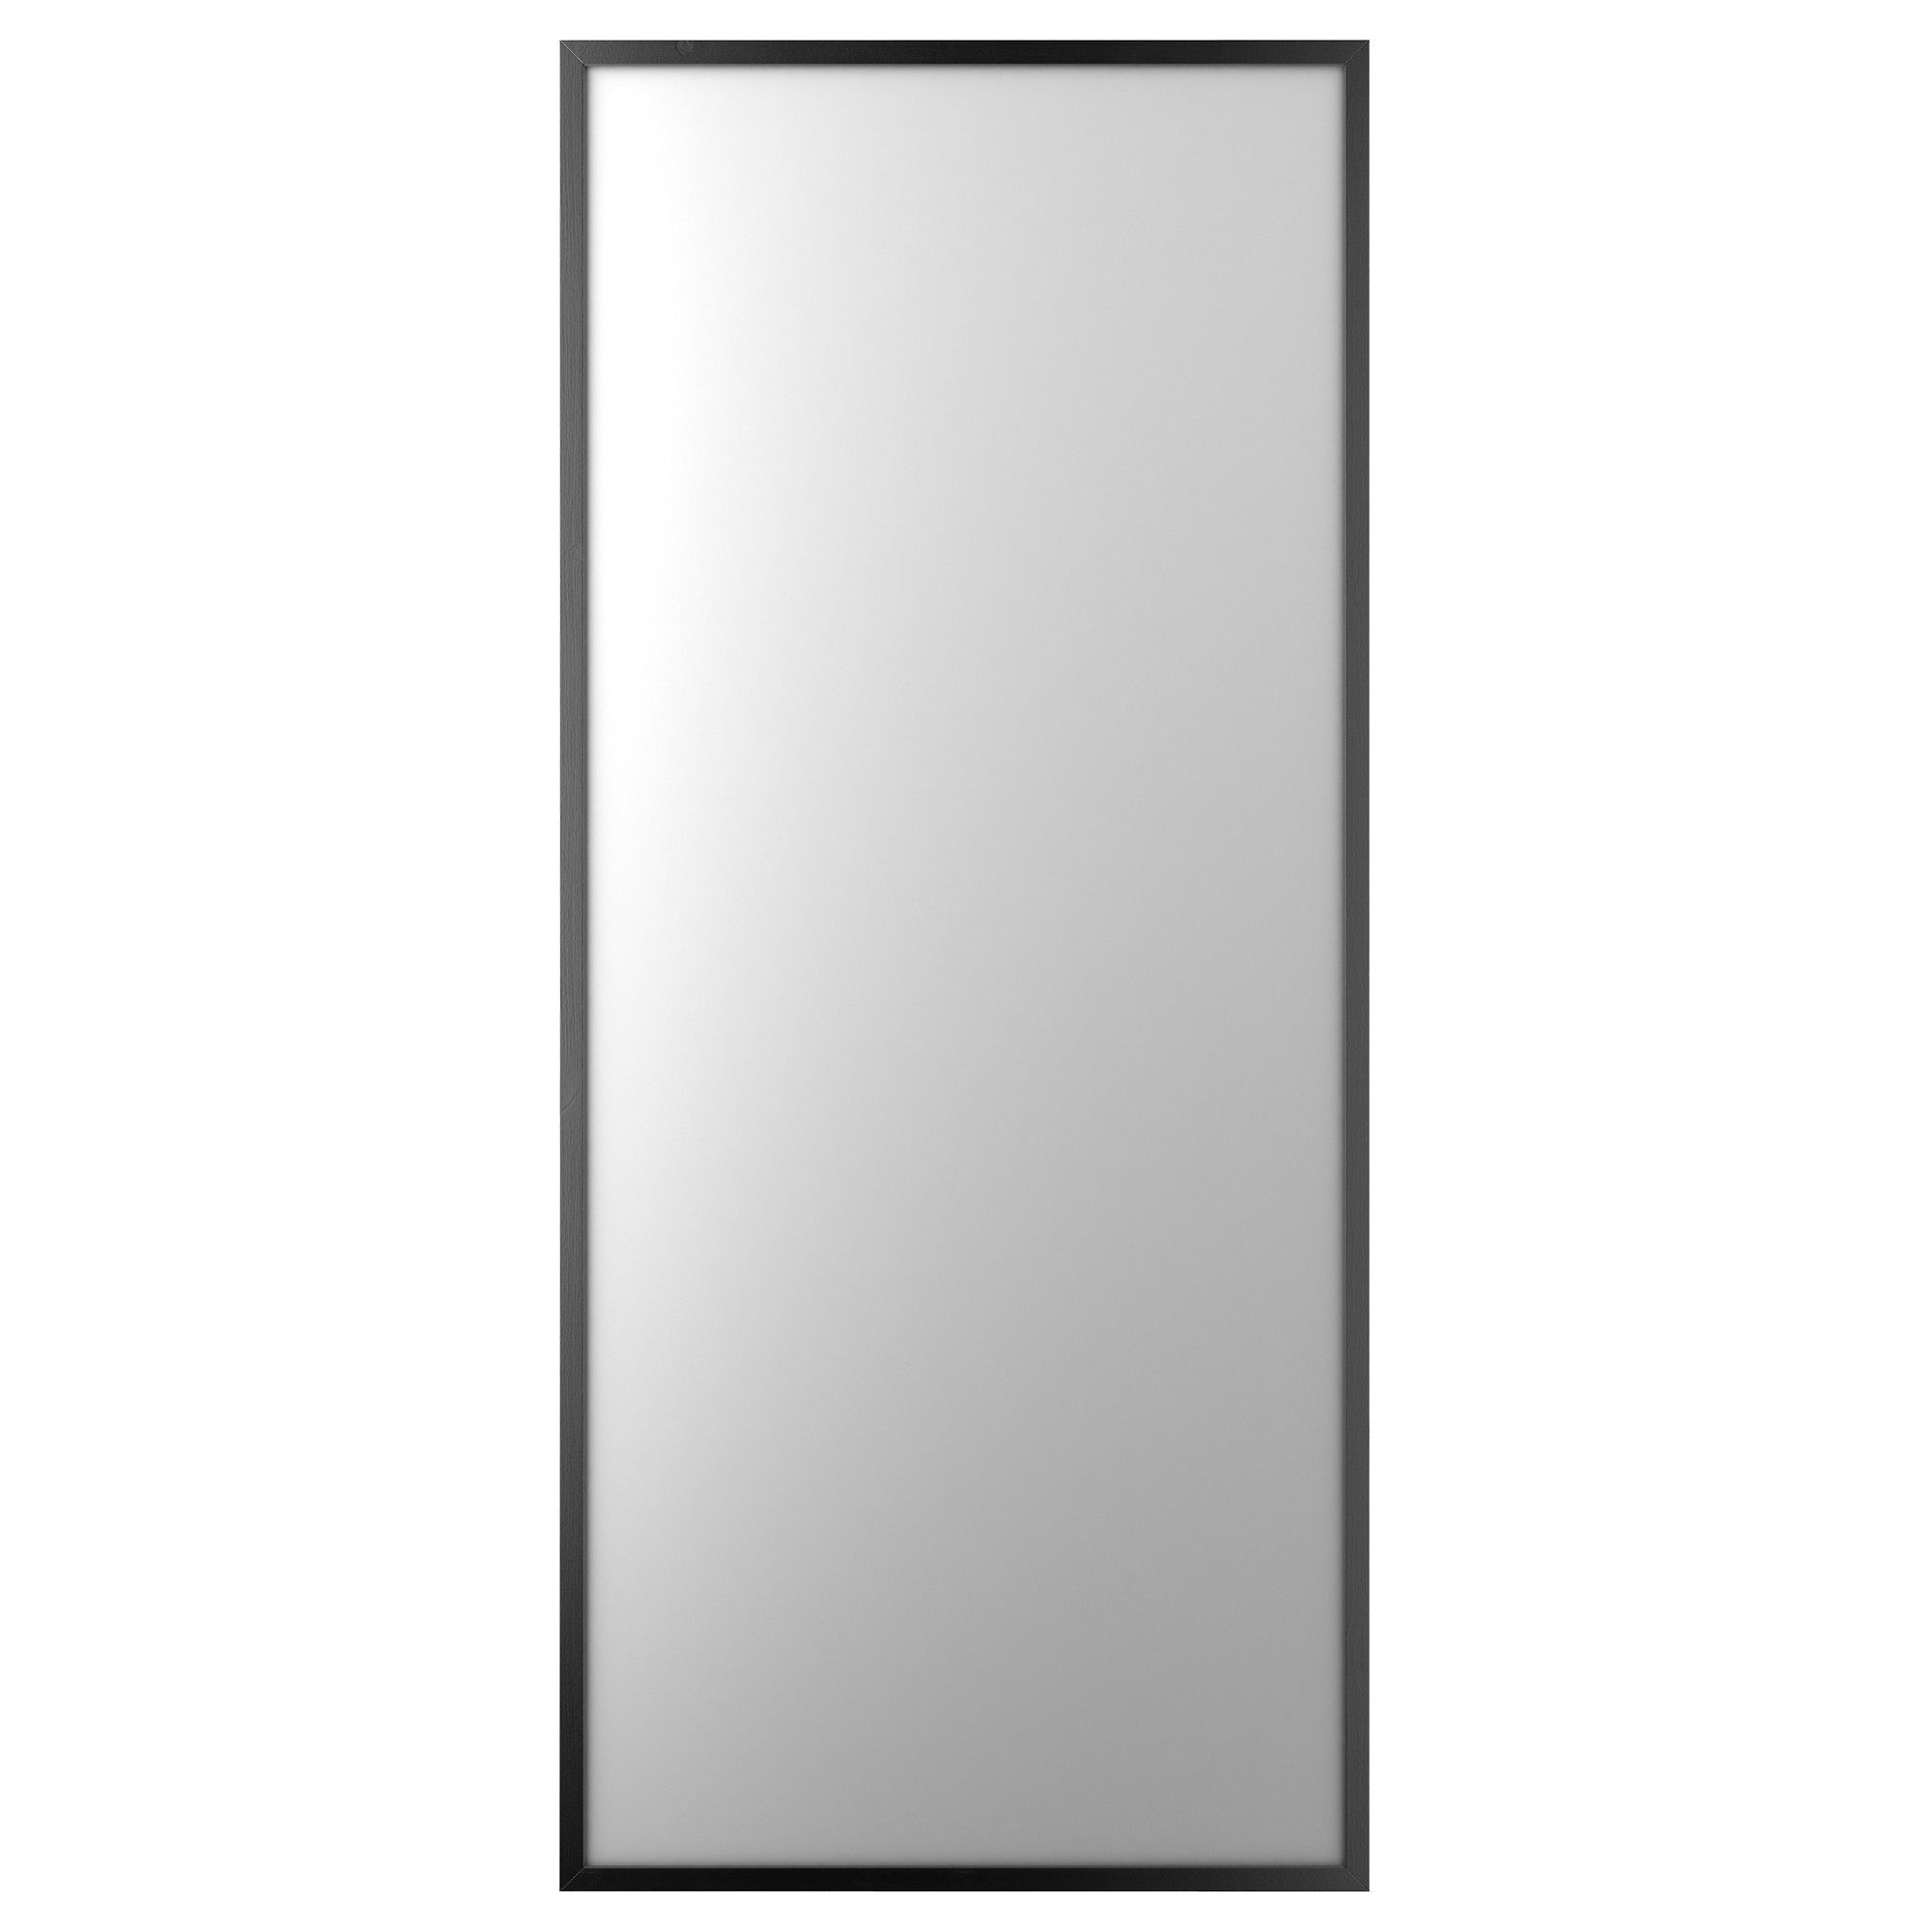 "Stave Mirror – Black Brown, 27 1/2X63 "" – Ikea – $49 For End Of Within Popular Ikea Full Length Wall Mirrors (View 18 of 20)"